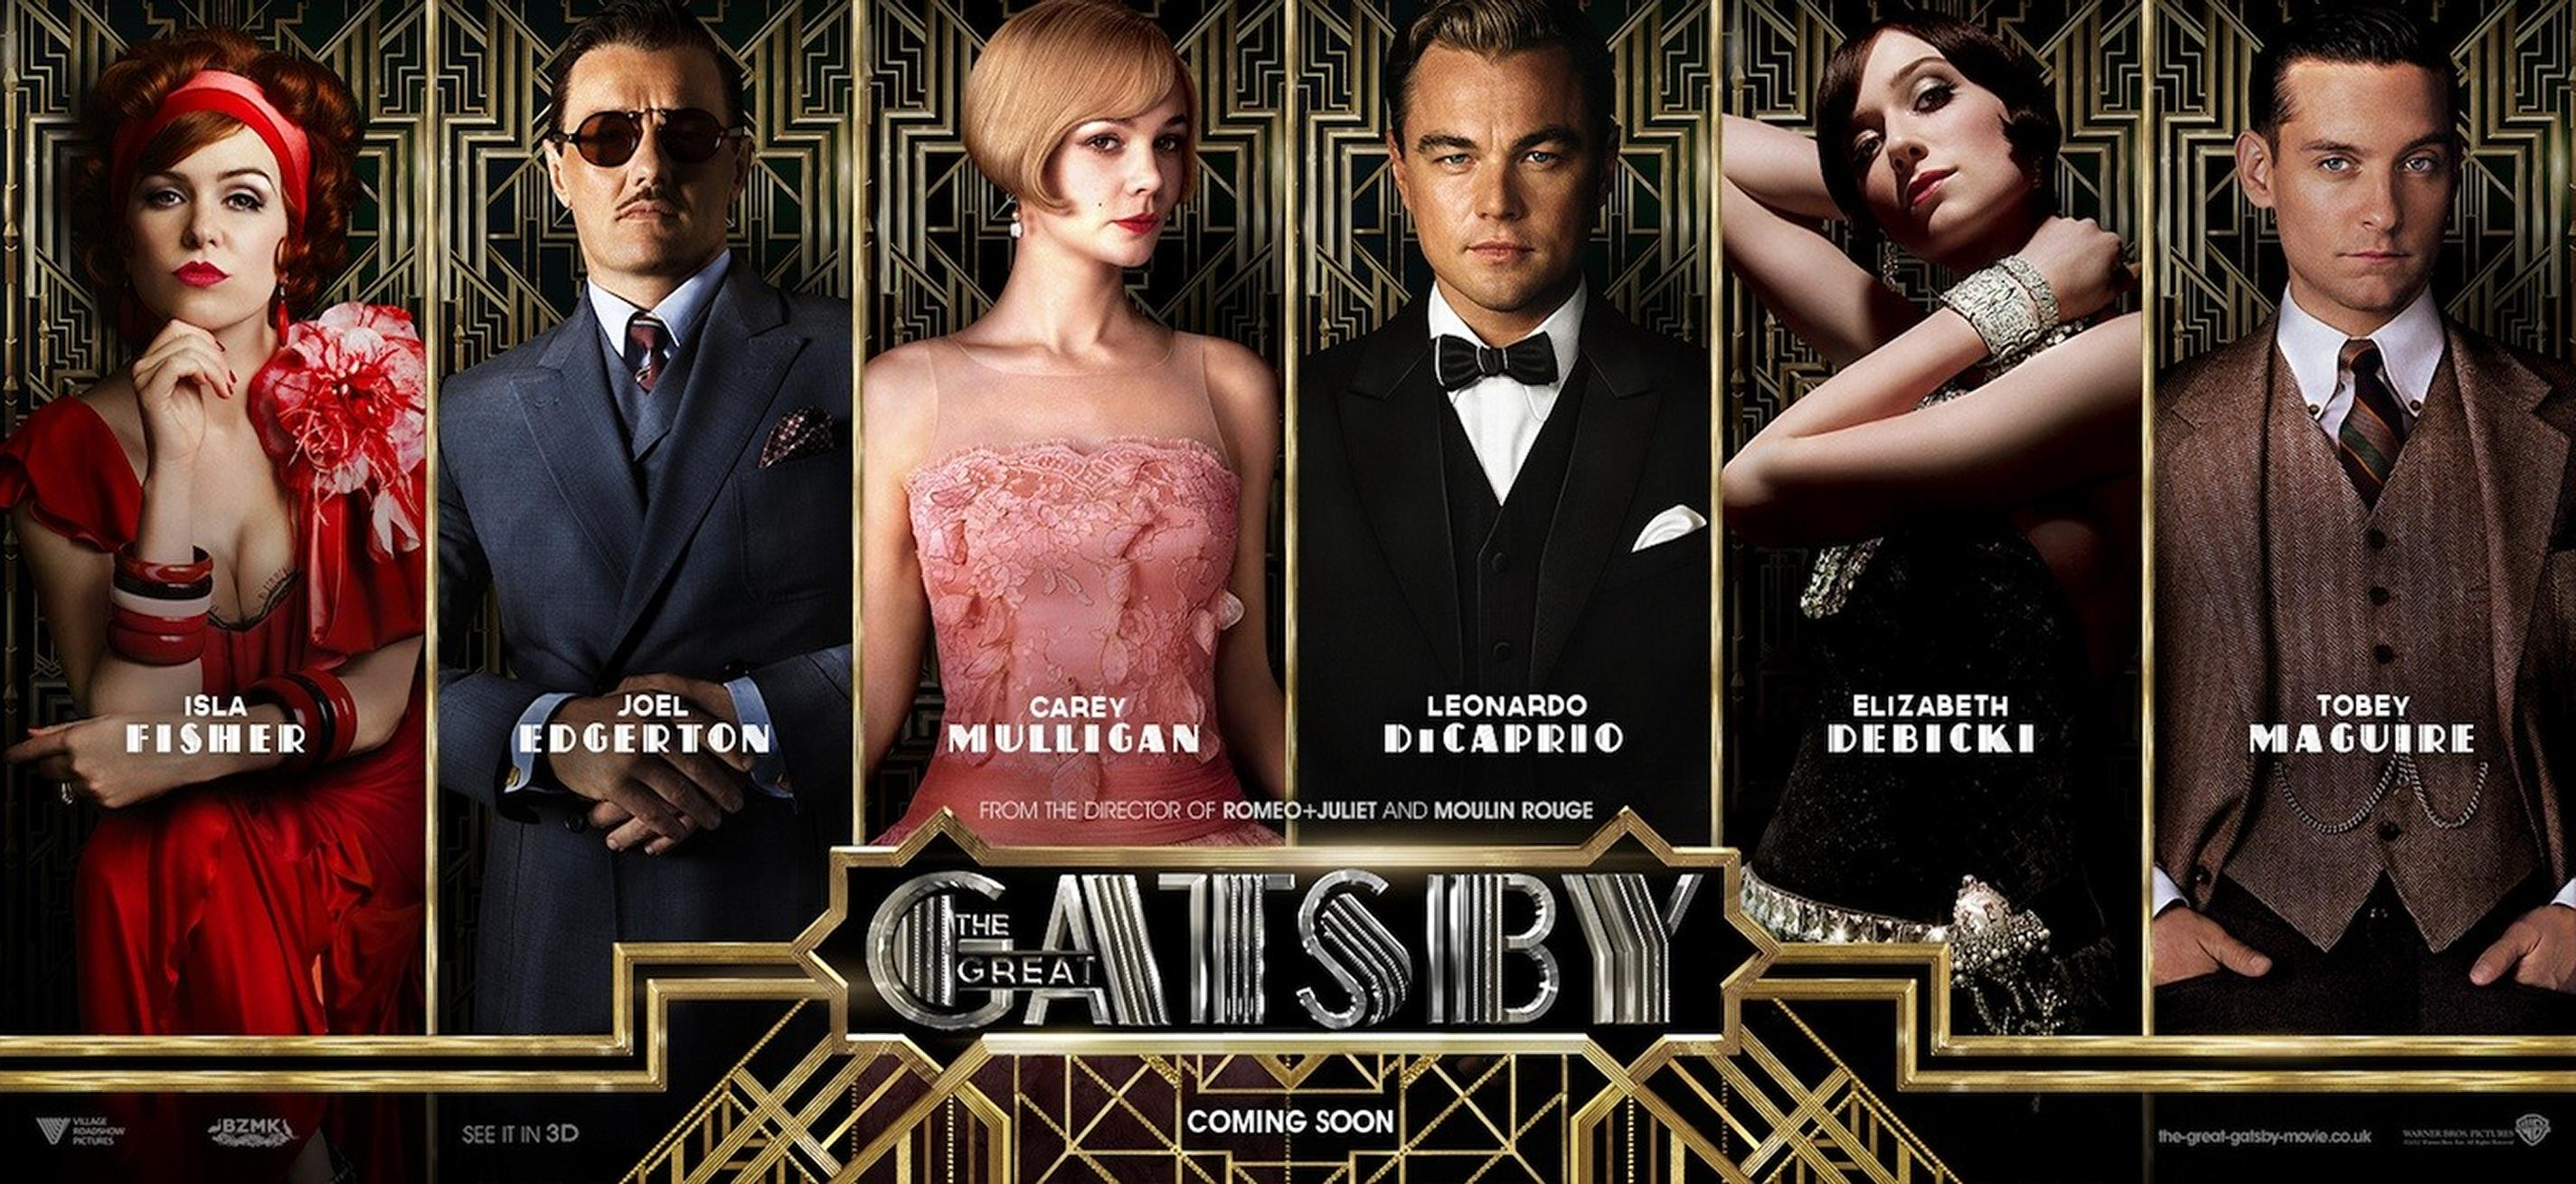 the-great-gatsby-poster-1